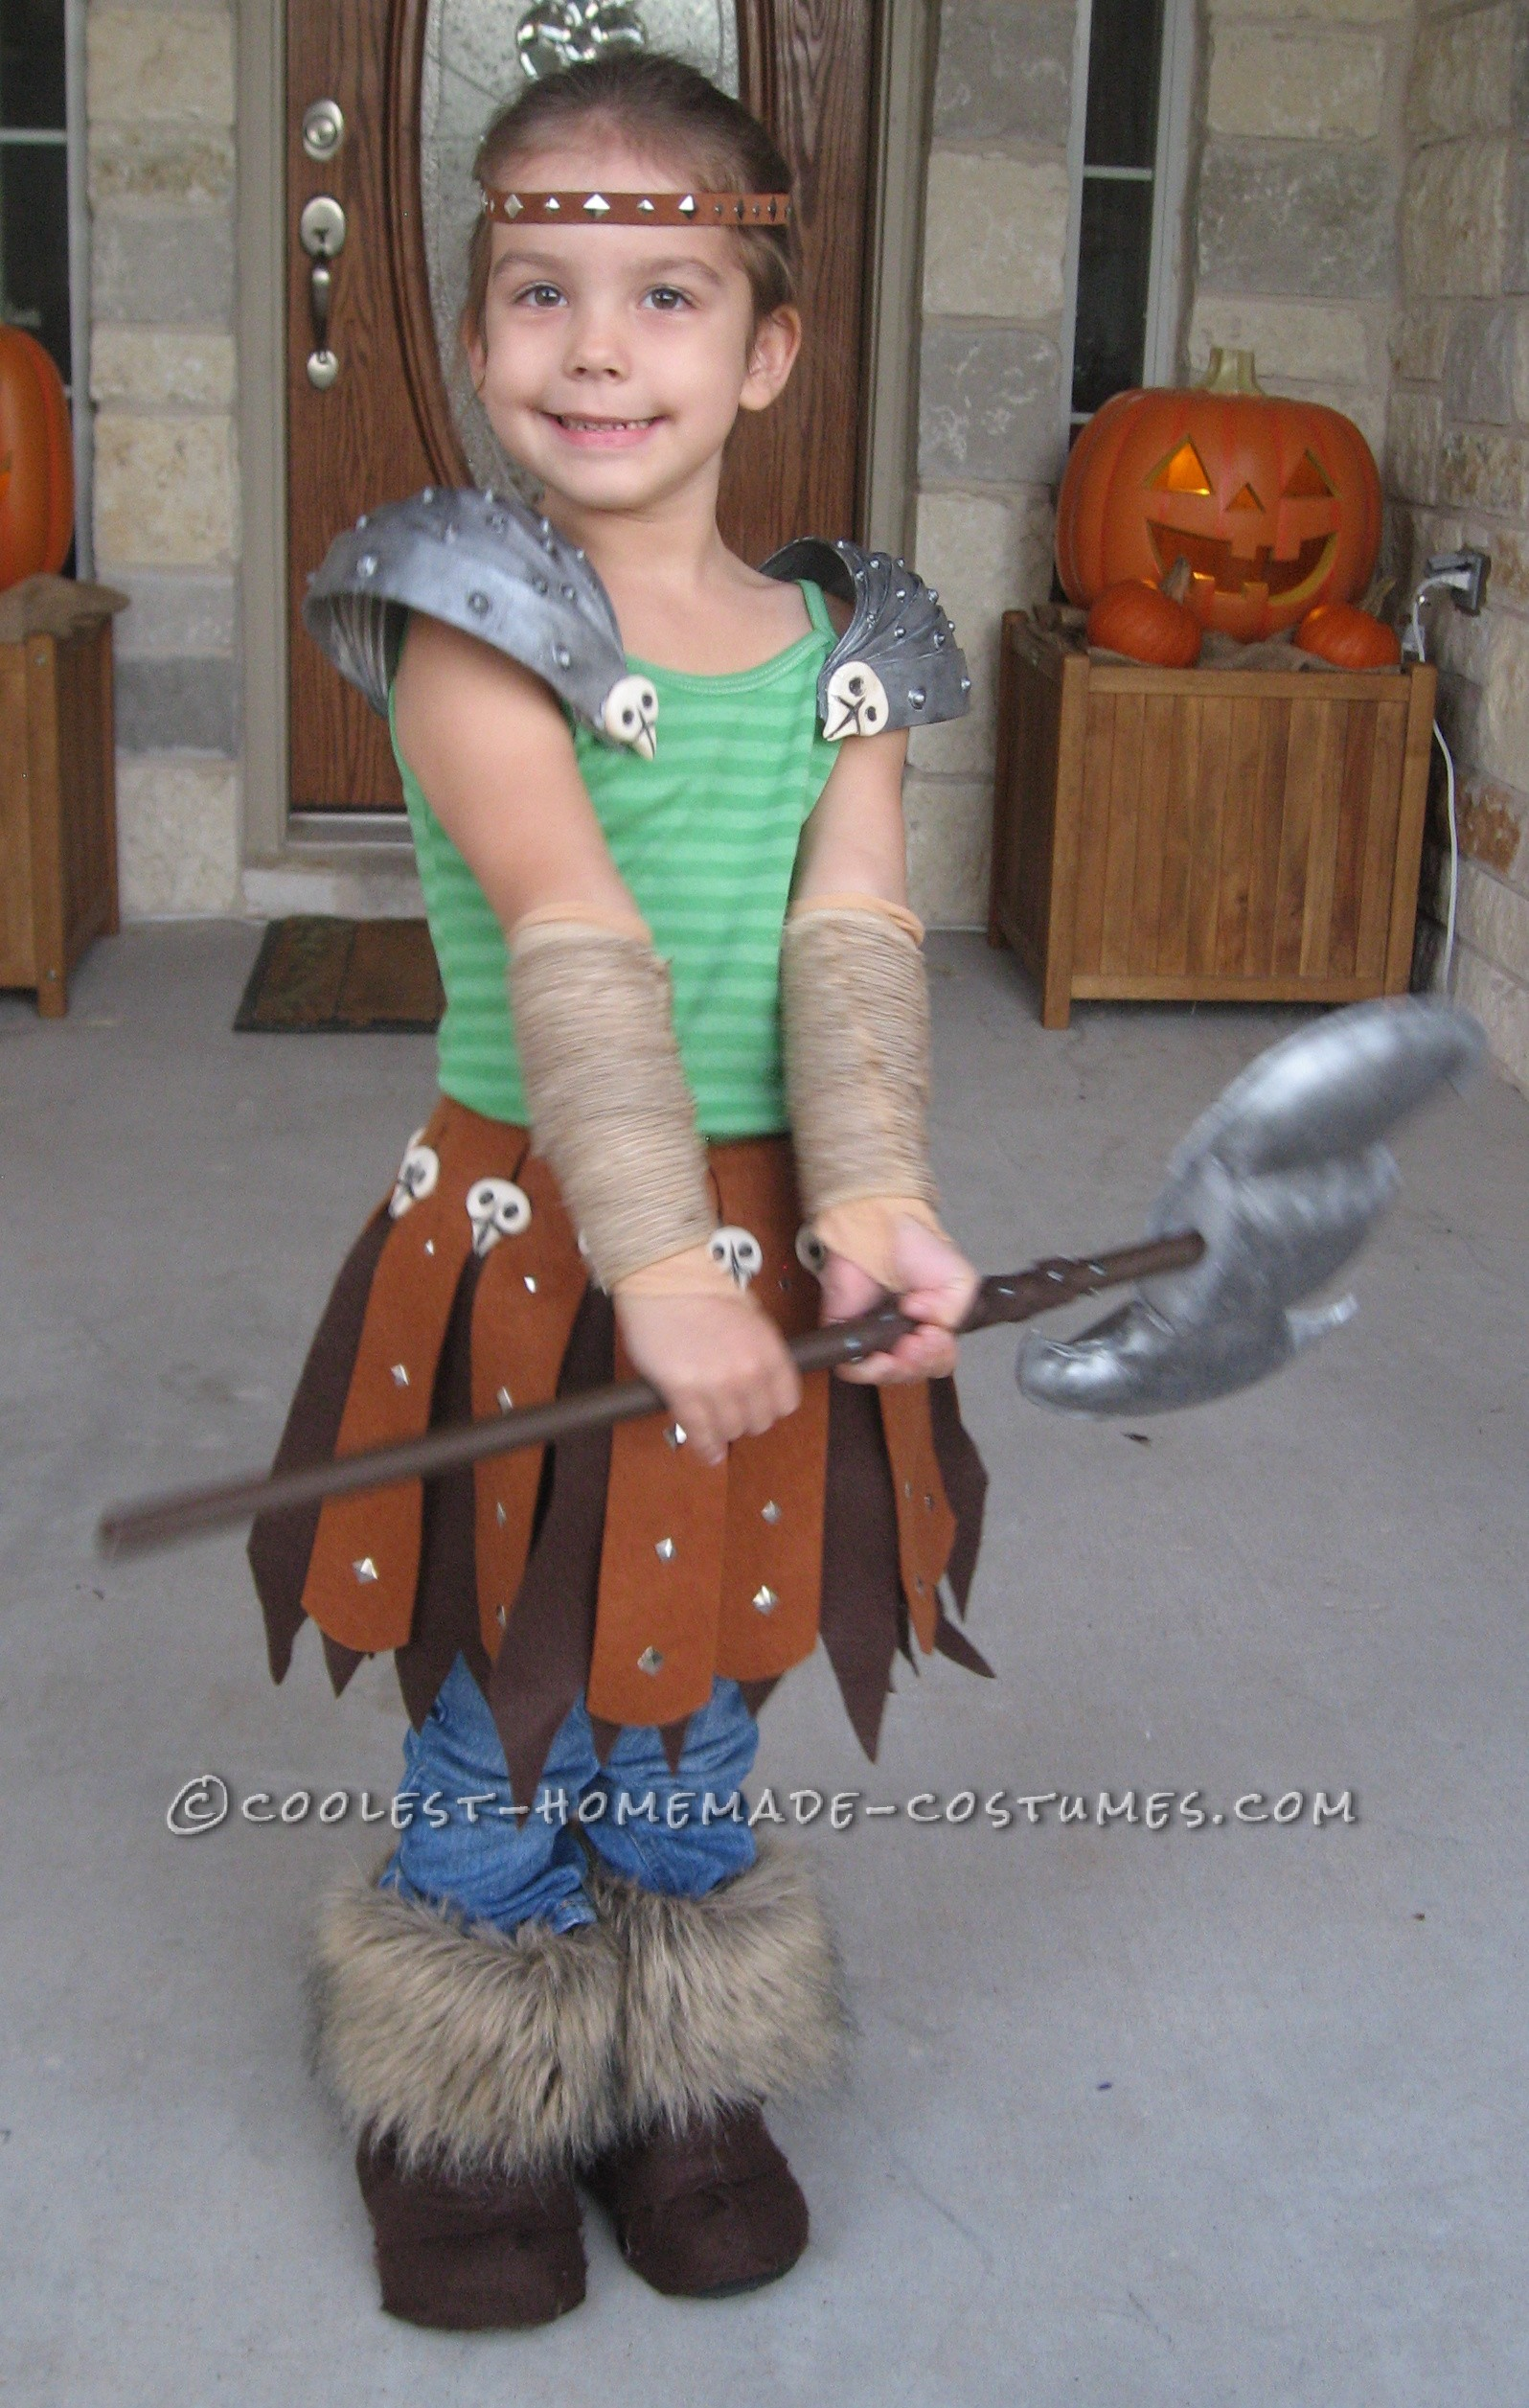 coolest homemade costumes